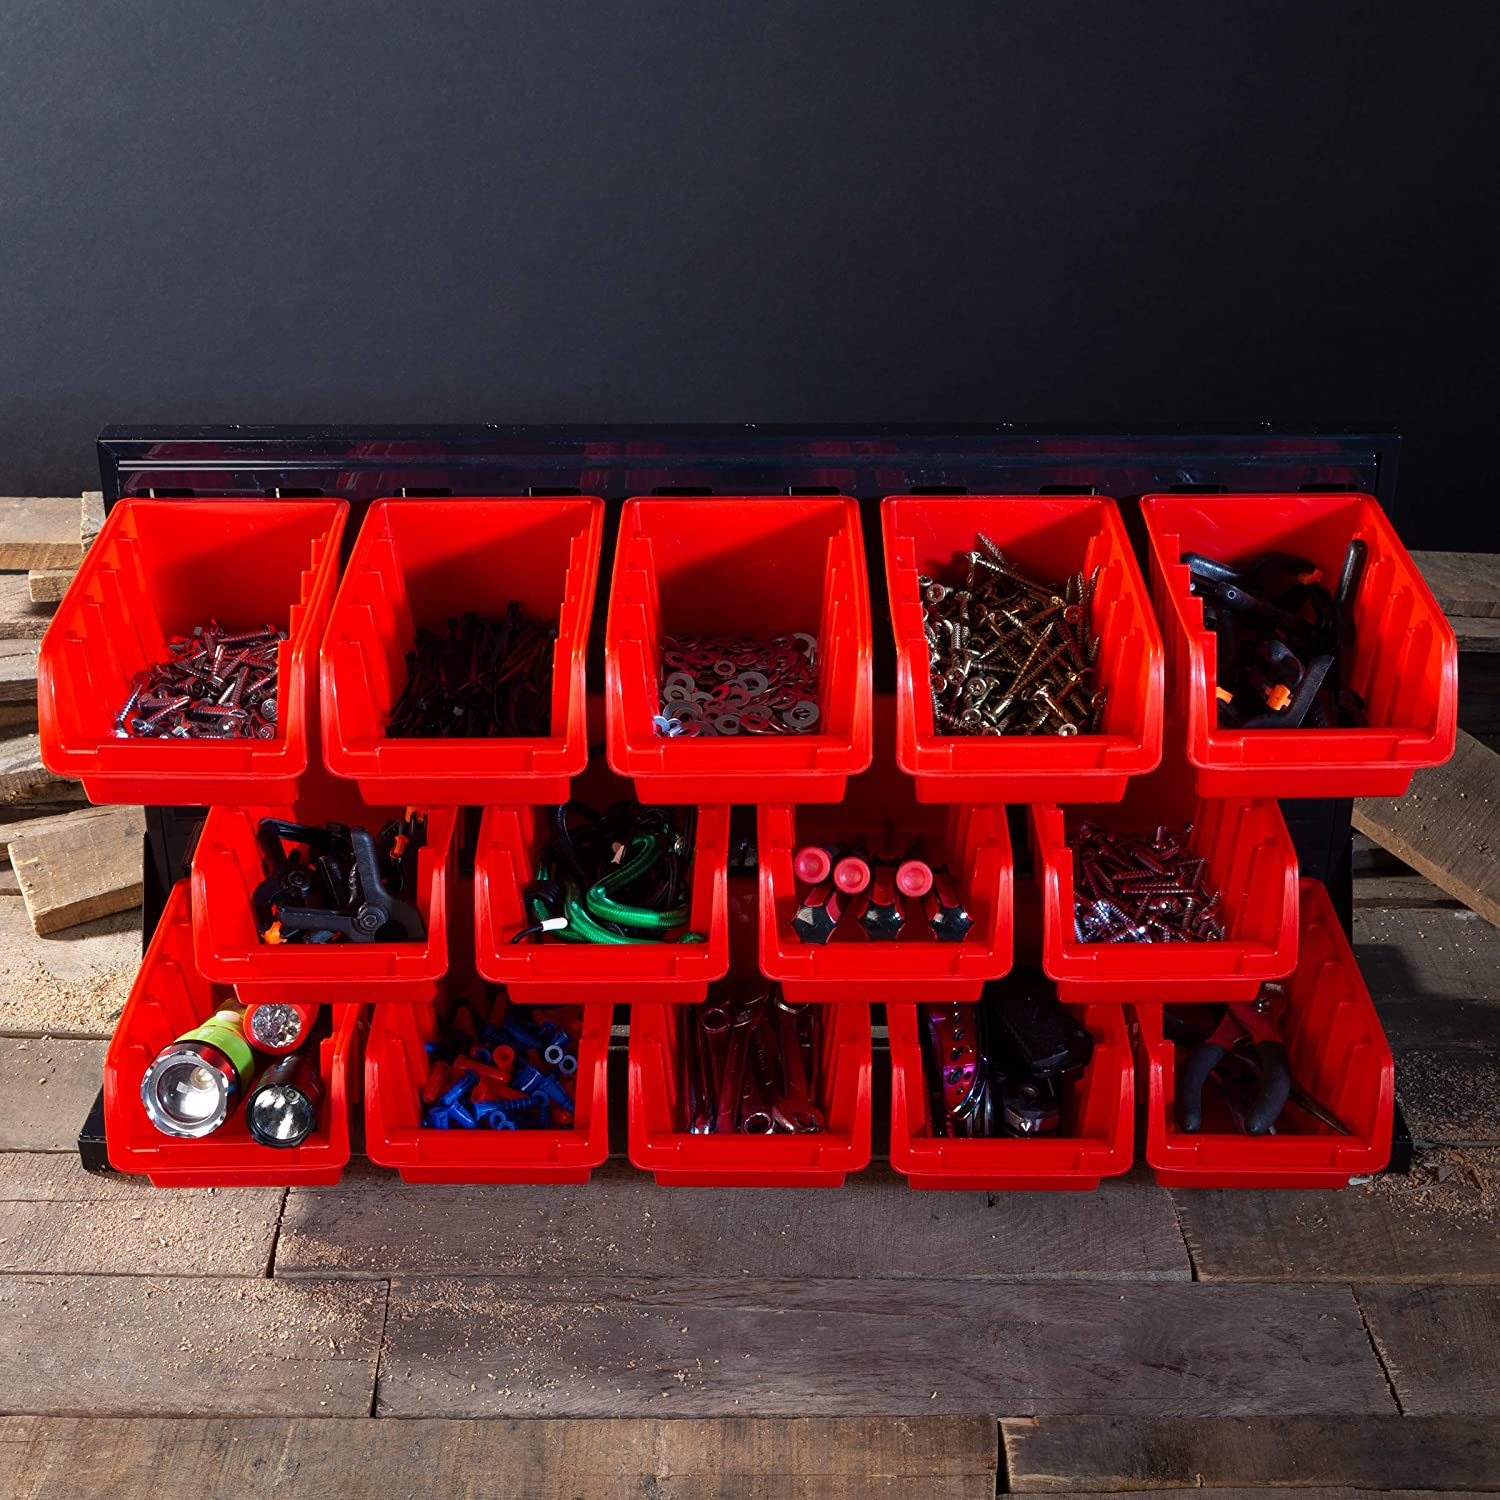 14 Bin Storage Rack Organizer- Wall Mountable Container with Removeable Drawers for Tools Office Supplies and More by Stalwart Hardware Crafts